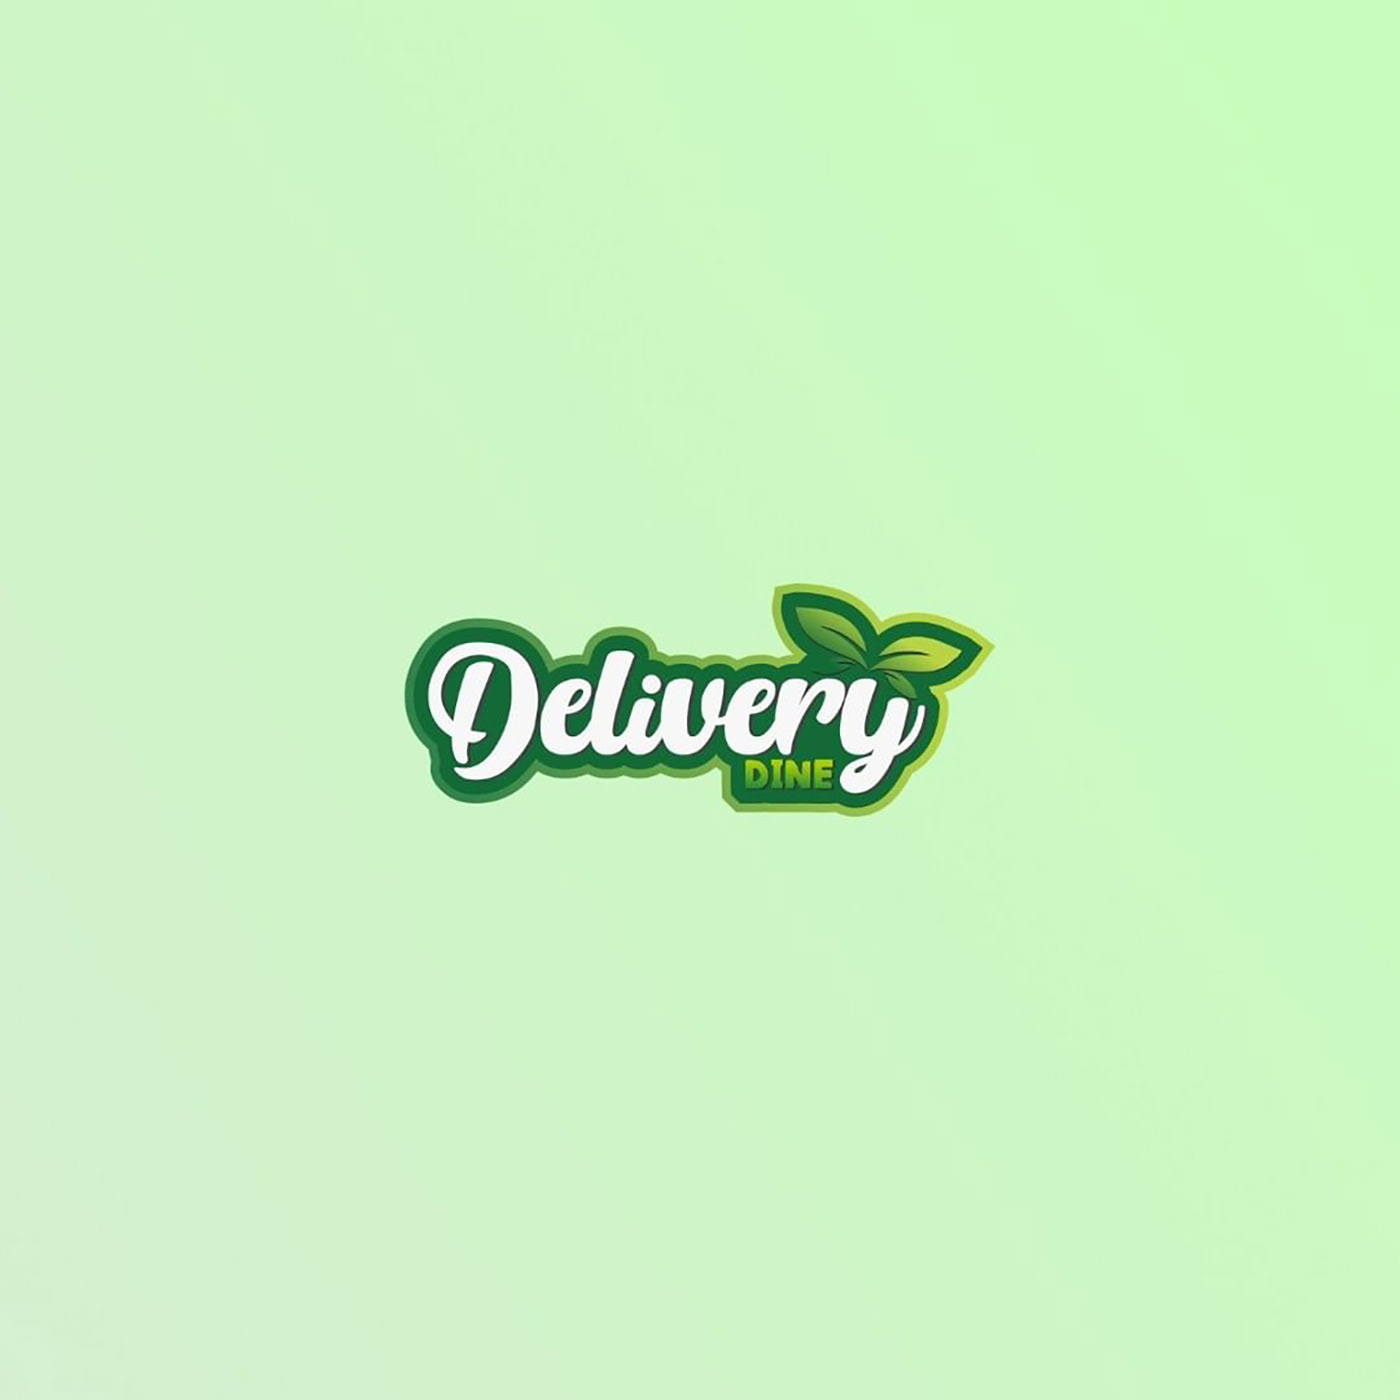 Delivery Dine Logo By Anzy Designs